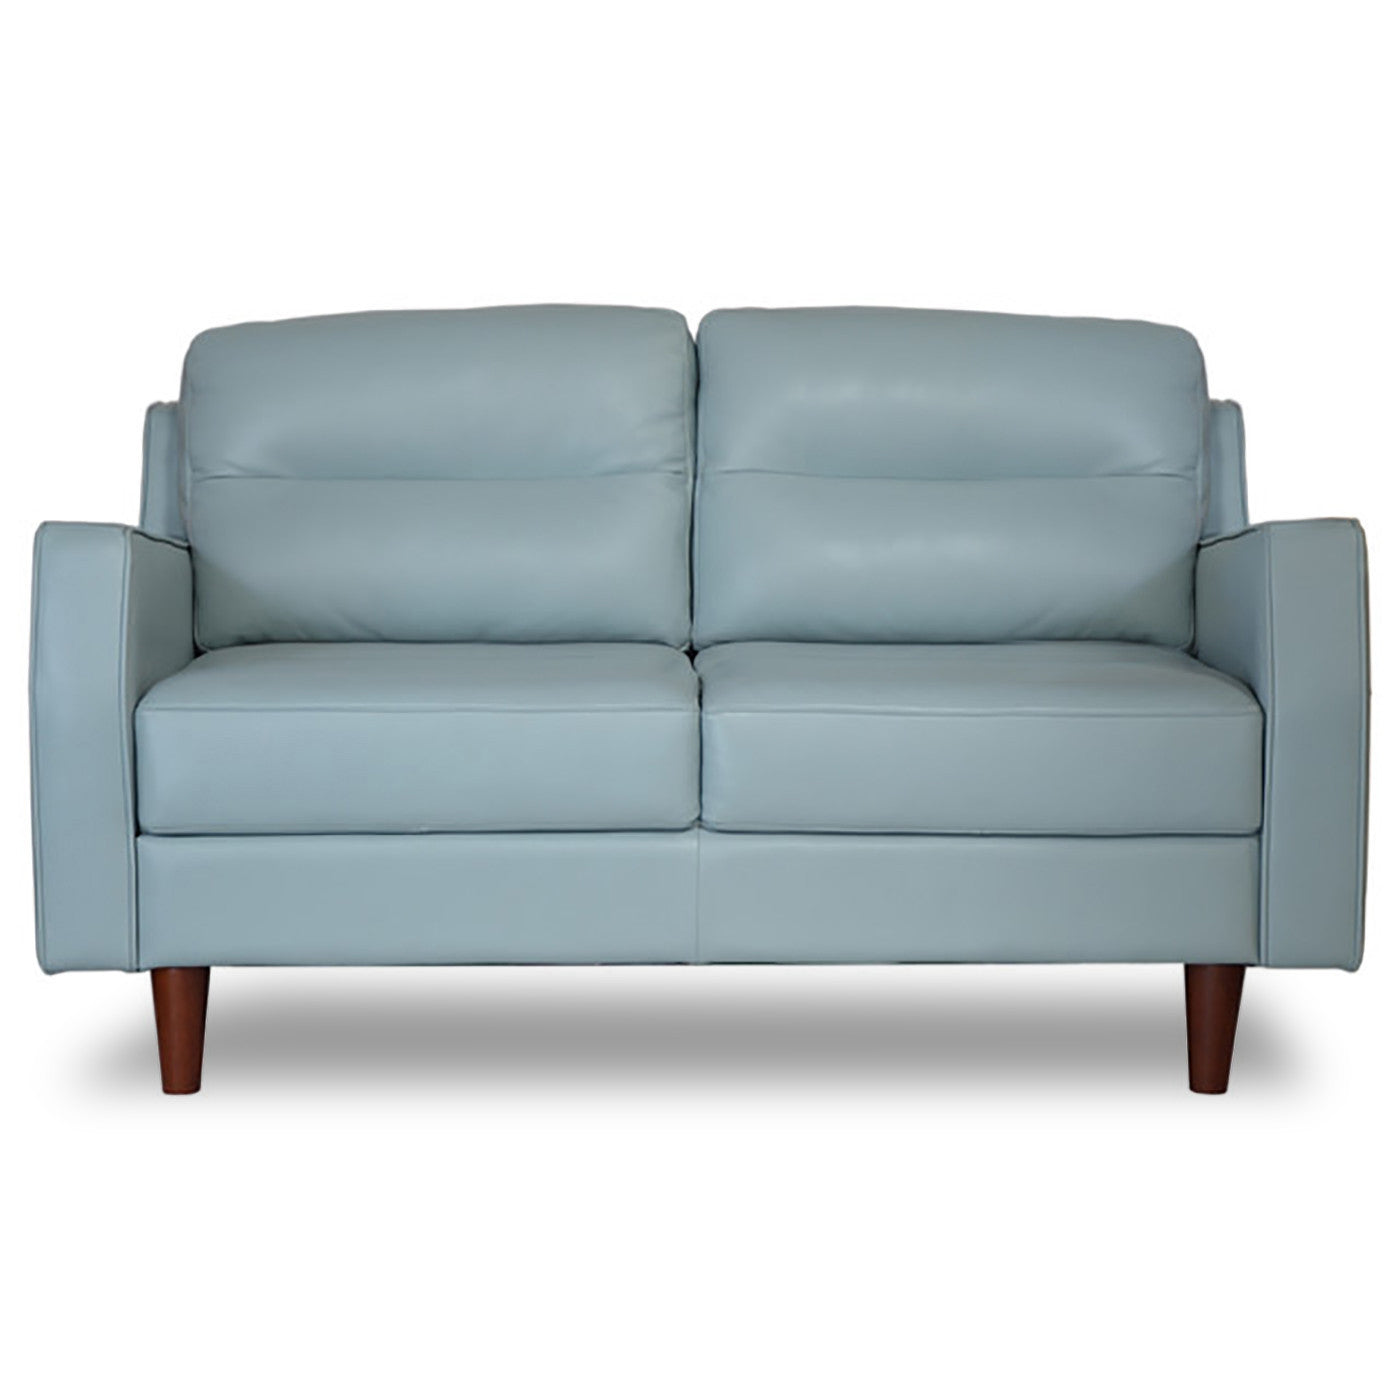 Valley spring leather apartment size sofa sky blue for Apartment size leather sofa